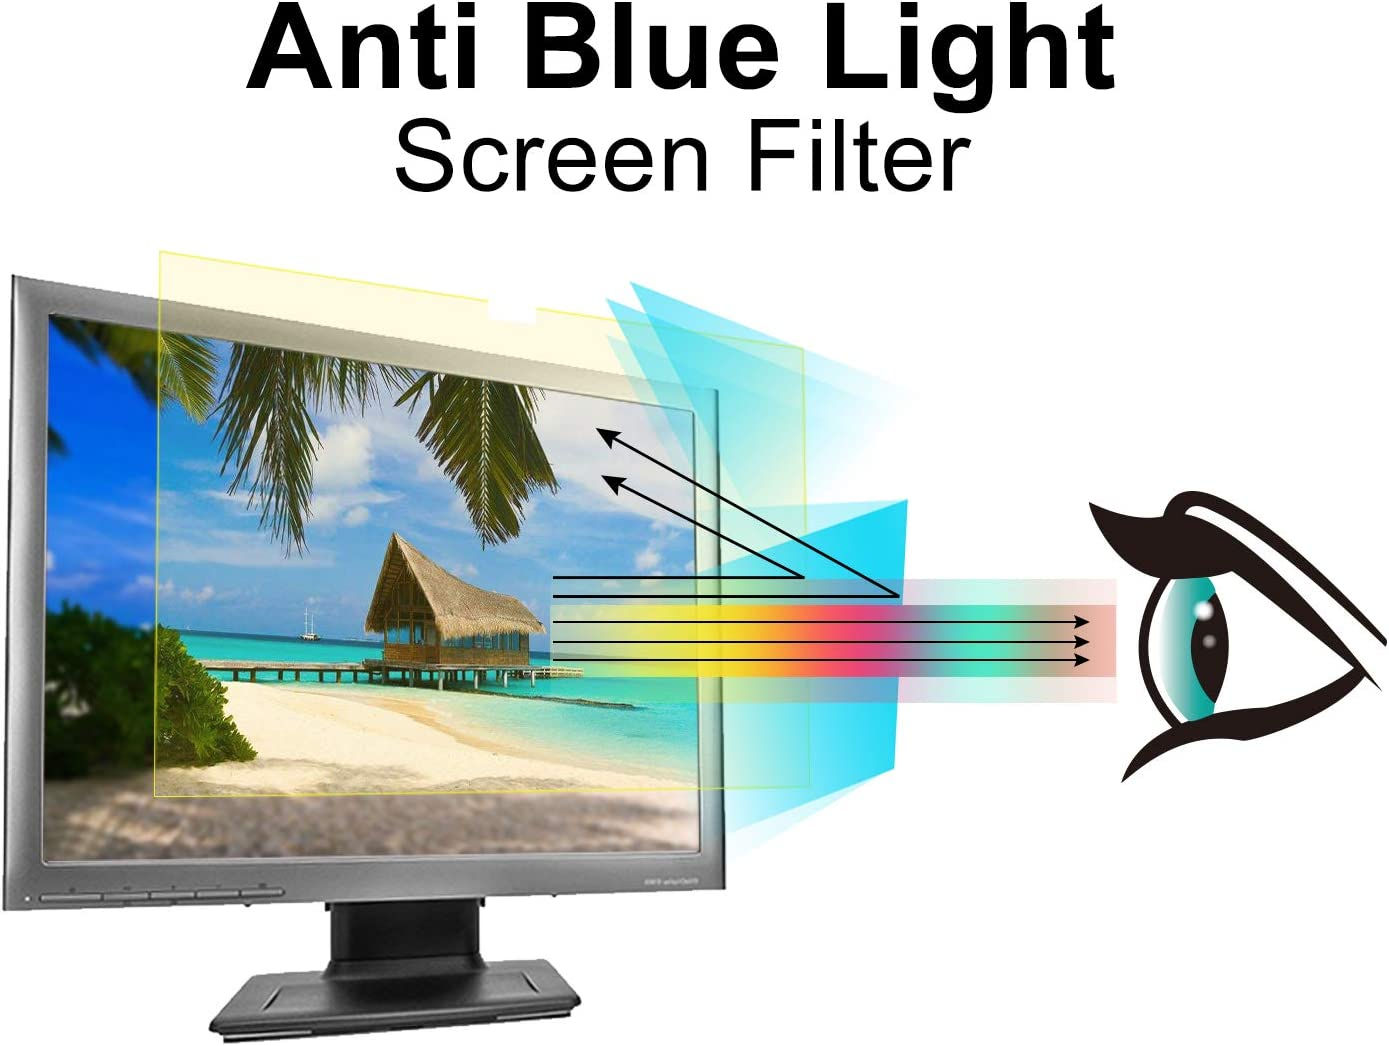 NUSIGN 24 inch Easy Hang Blue Light Blocking Screen Protector Panel For 23 23.6 W 21.26 X H 13.4 Widescreen Monitor Frame Hanging Type 23.8 24 inch Diagonal Desktop Computer LED PC Monitor- Anti-UV Eye Protection Filter Film